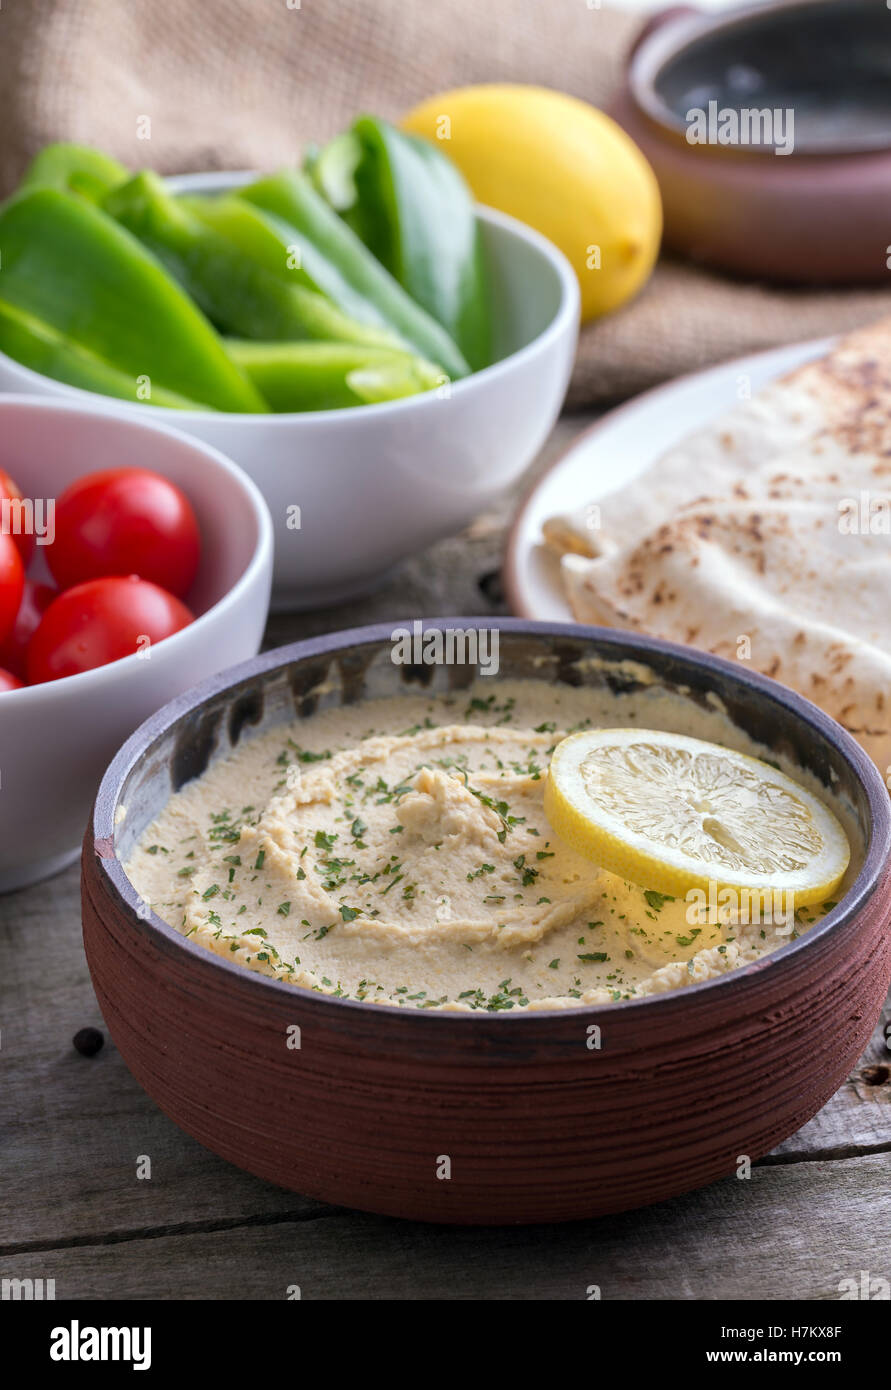 Humus in homemade bowl chapati and vegetable. - Stock Image